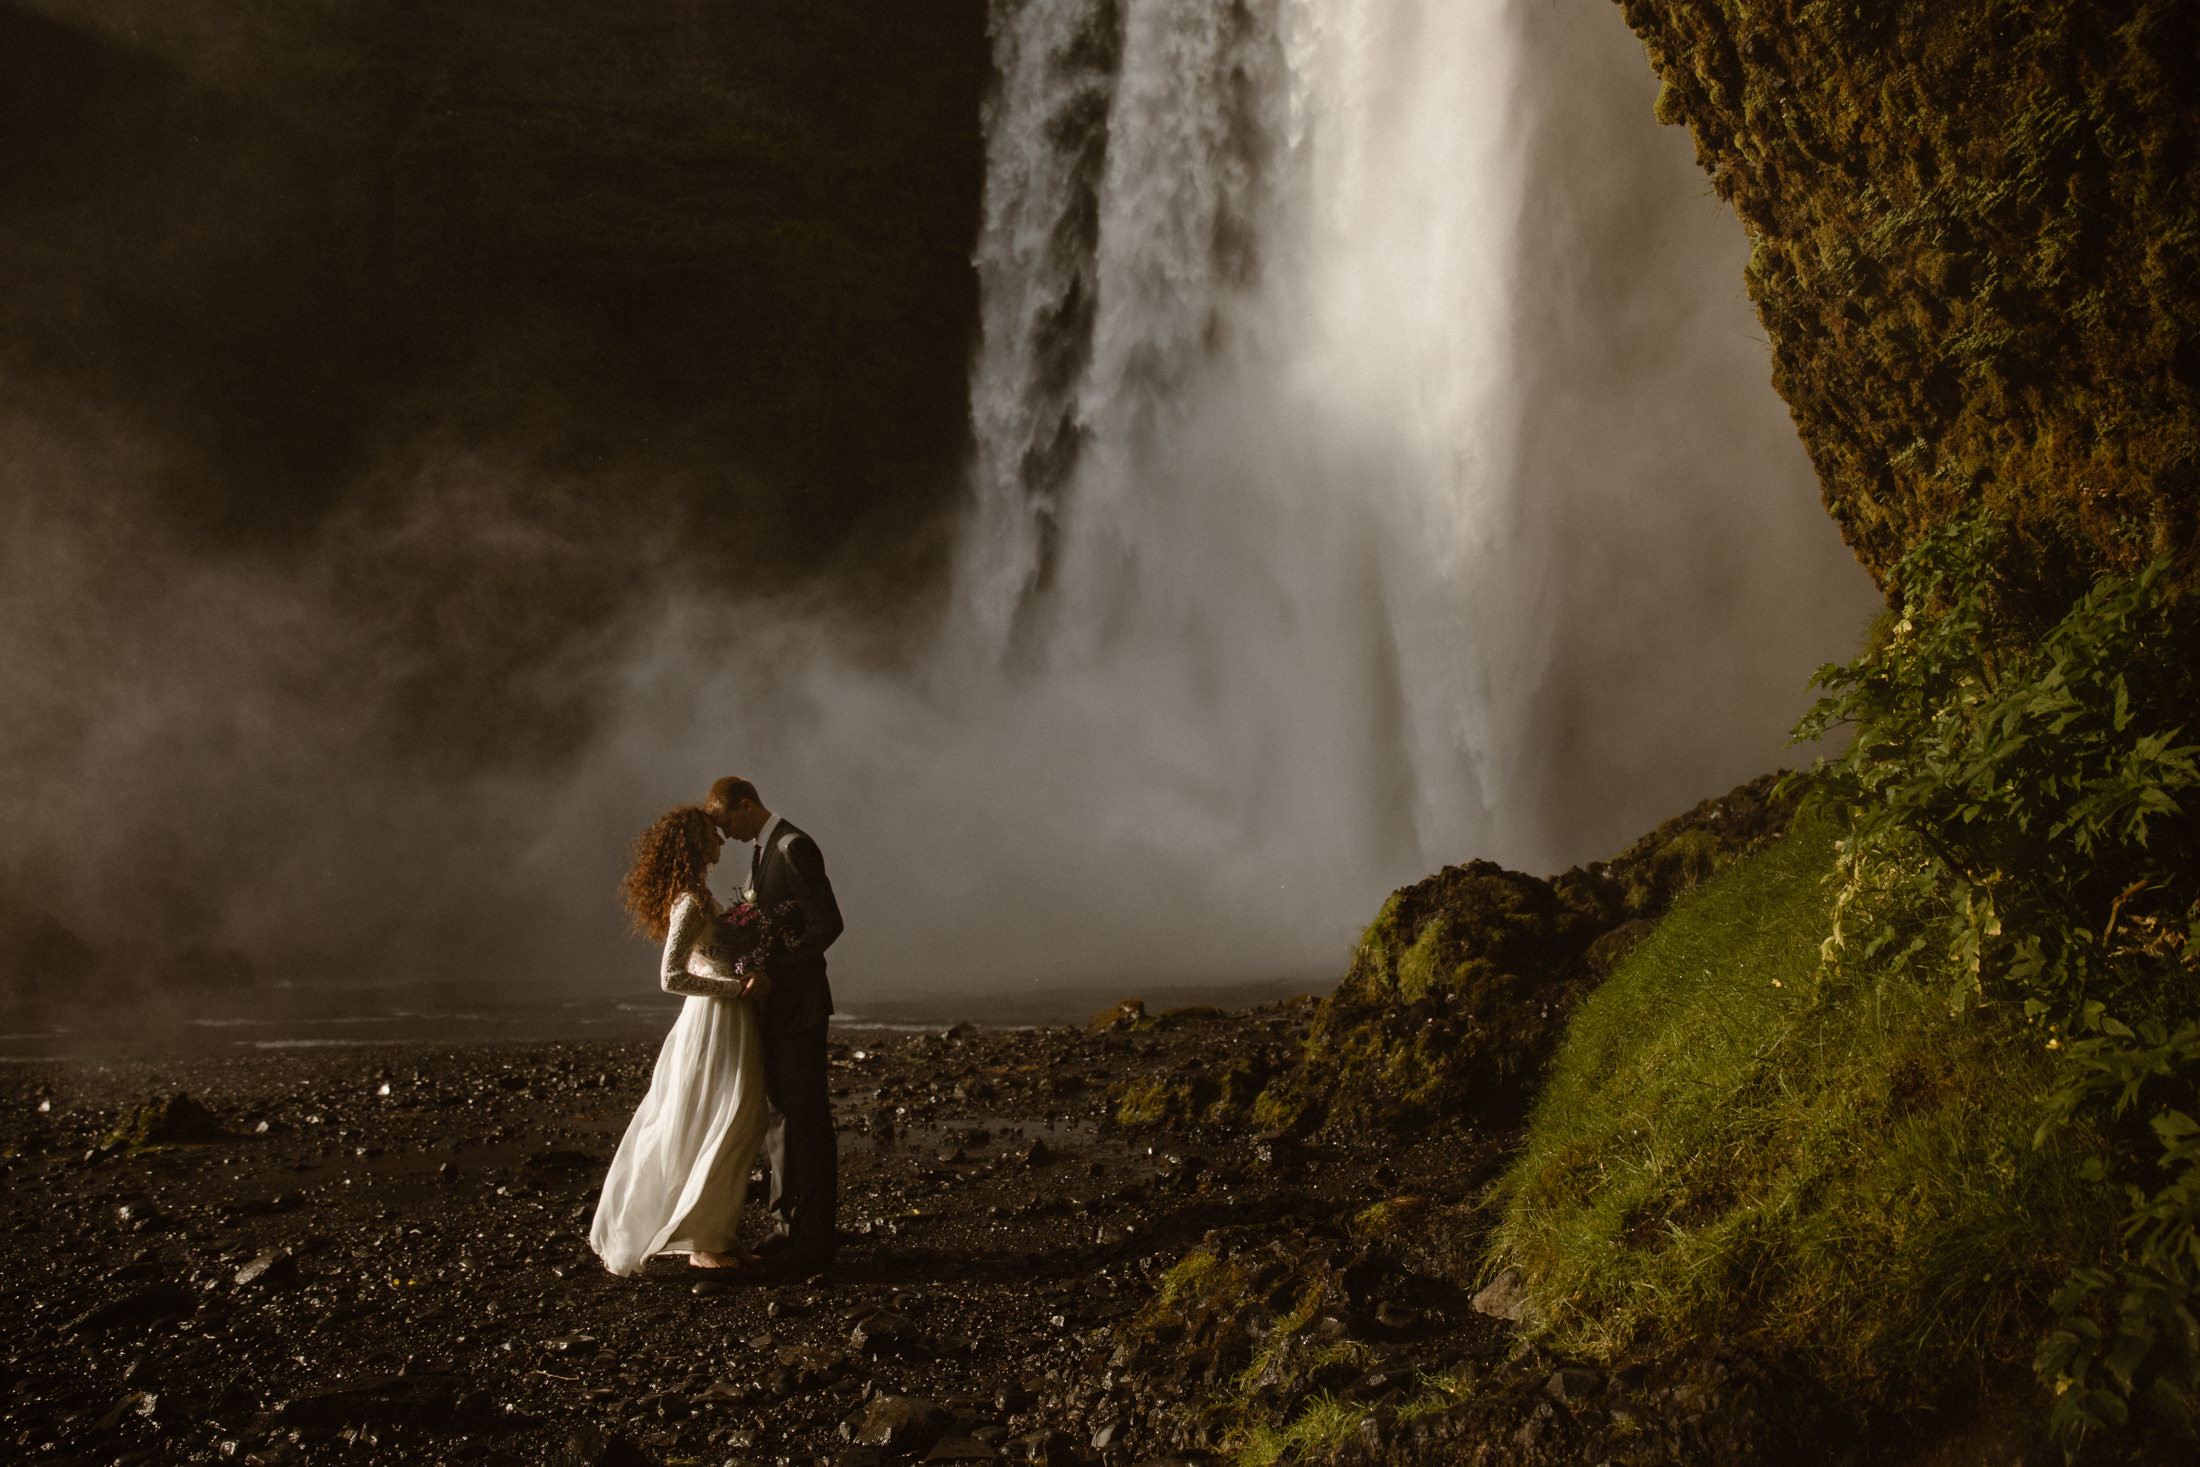 A bride and groom lean into each other under a large waterfall in Southern Iceland. They had an intimate wedding, just the two of them, at the base of a waterfall, surrounded by some of Iceland's most beautiful moss covered rocks and towering cliffs.